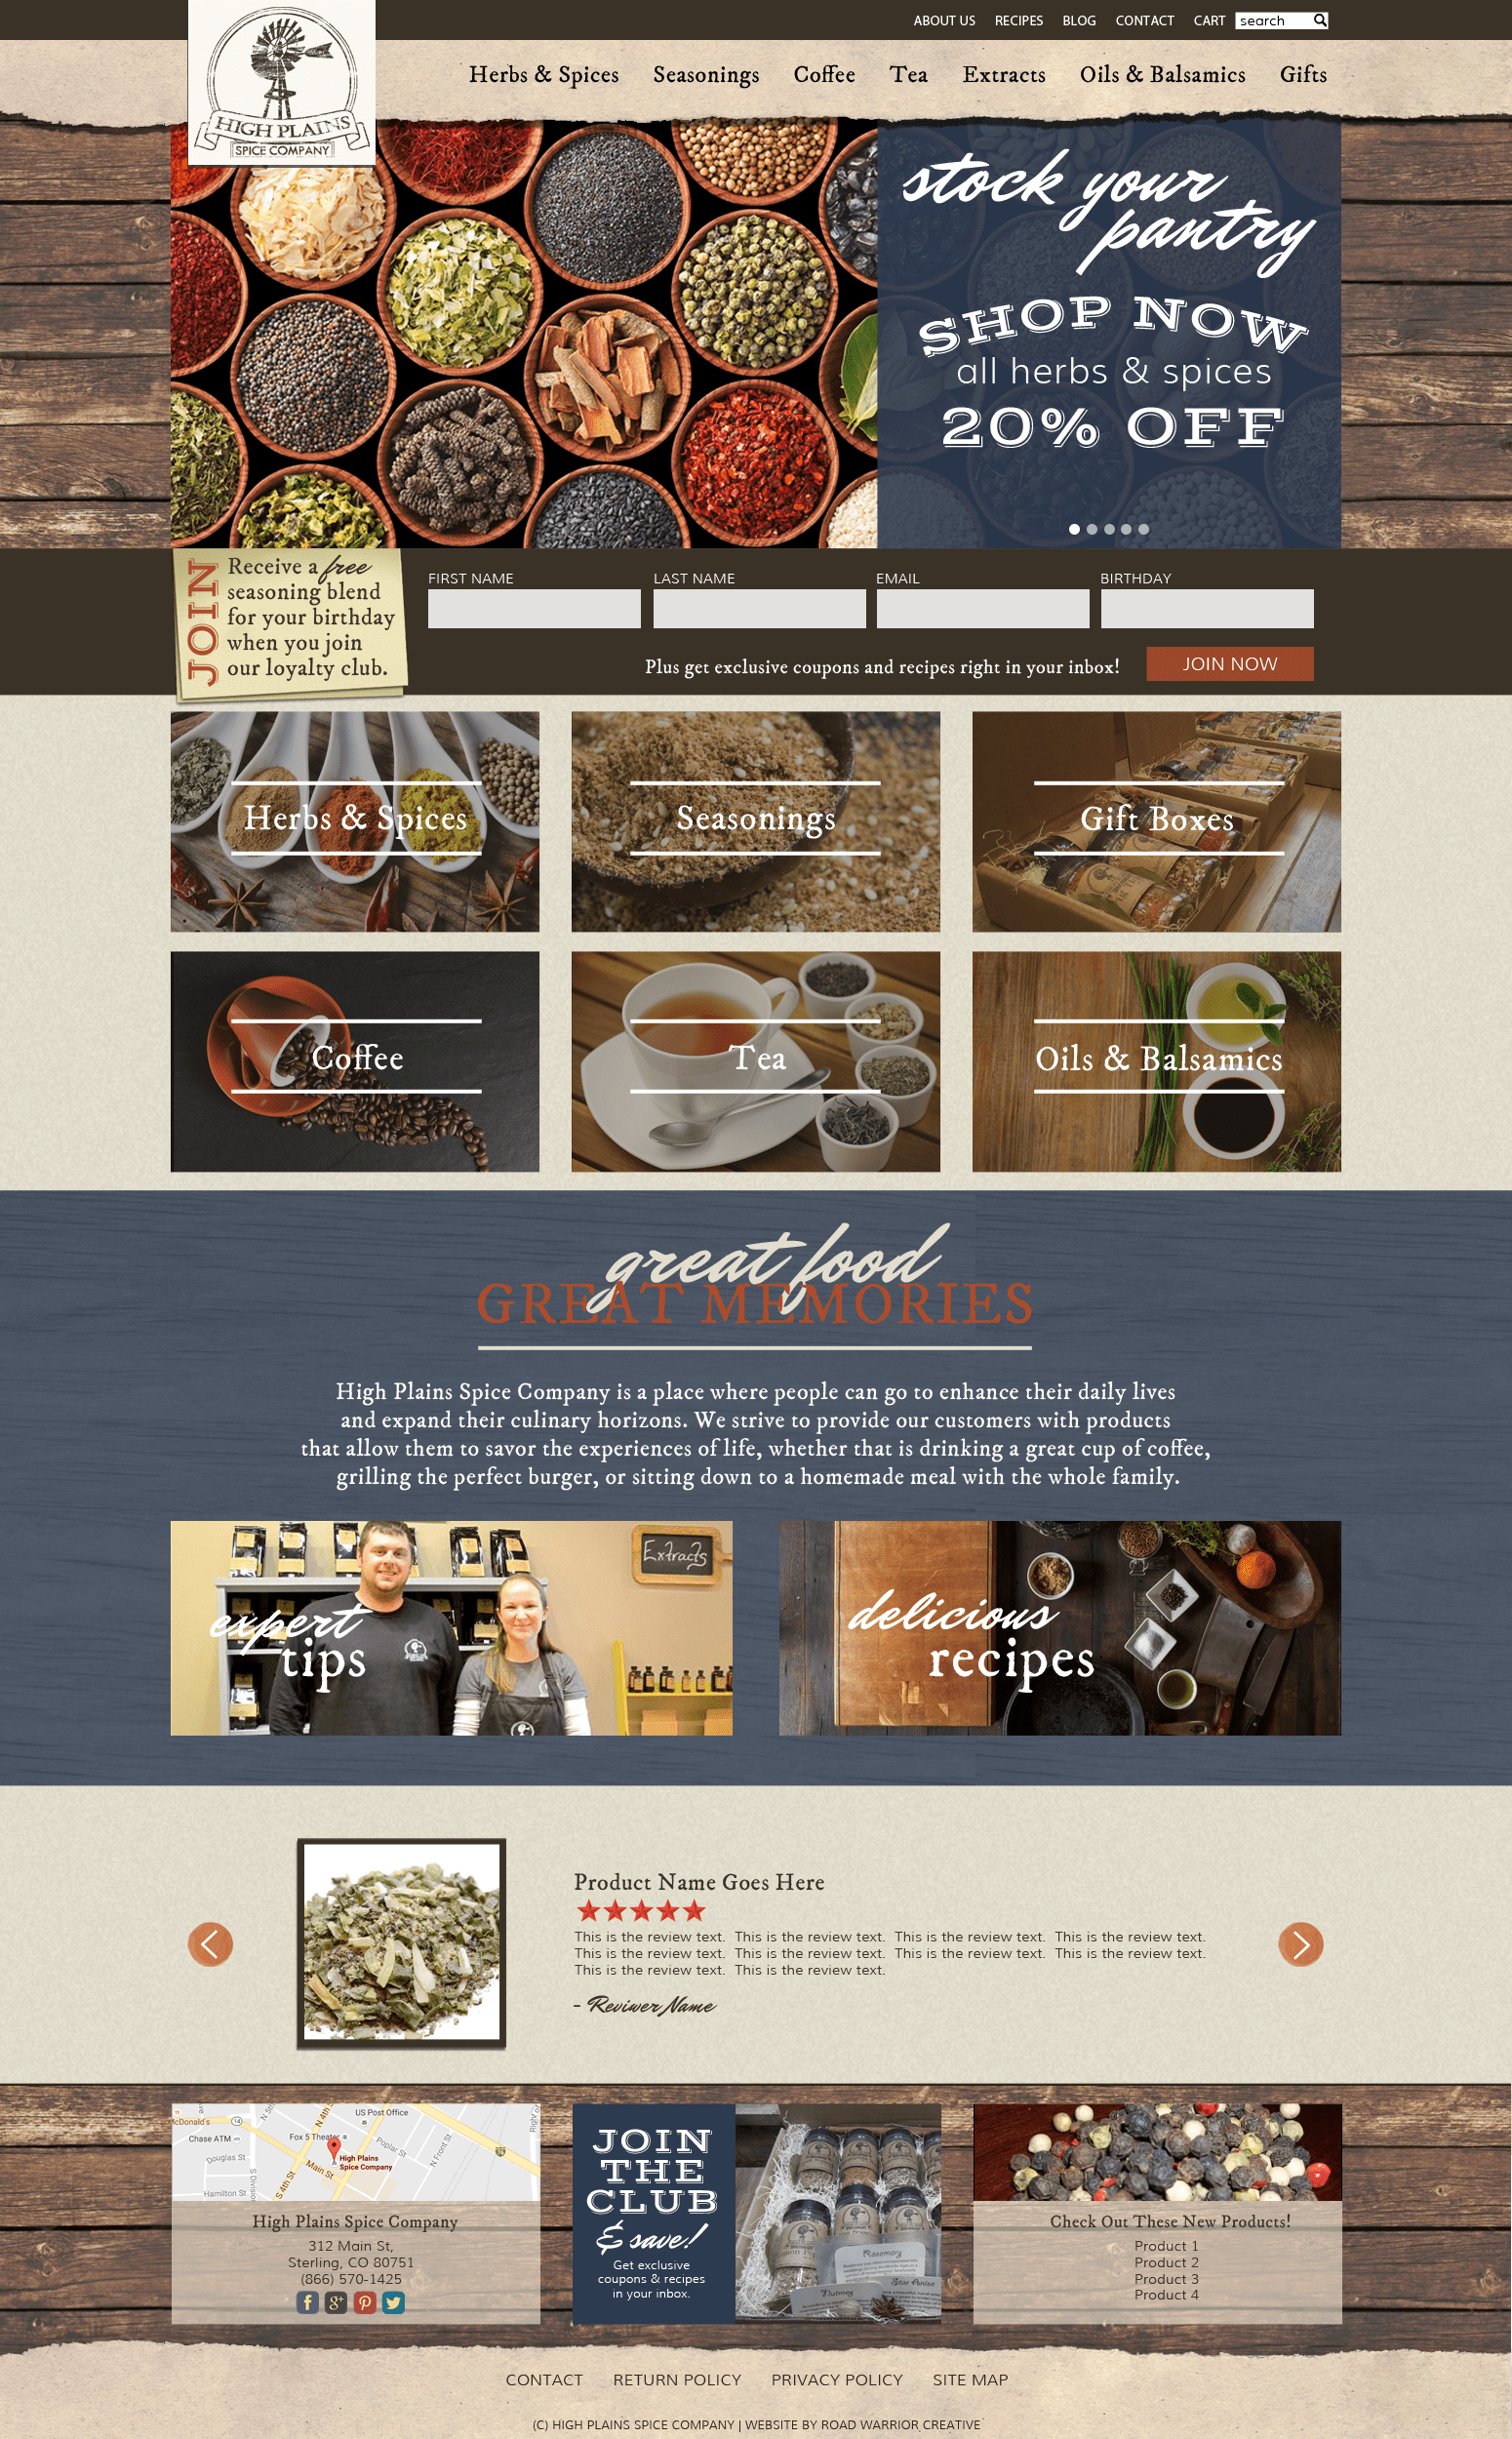 high plains spice company website design 1